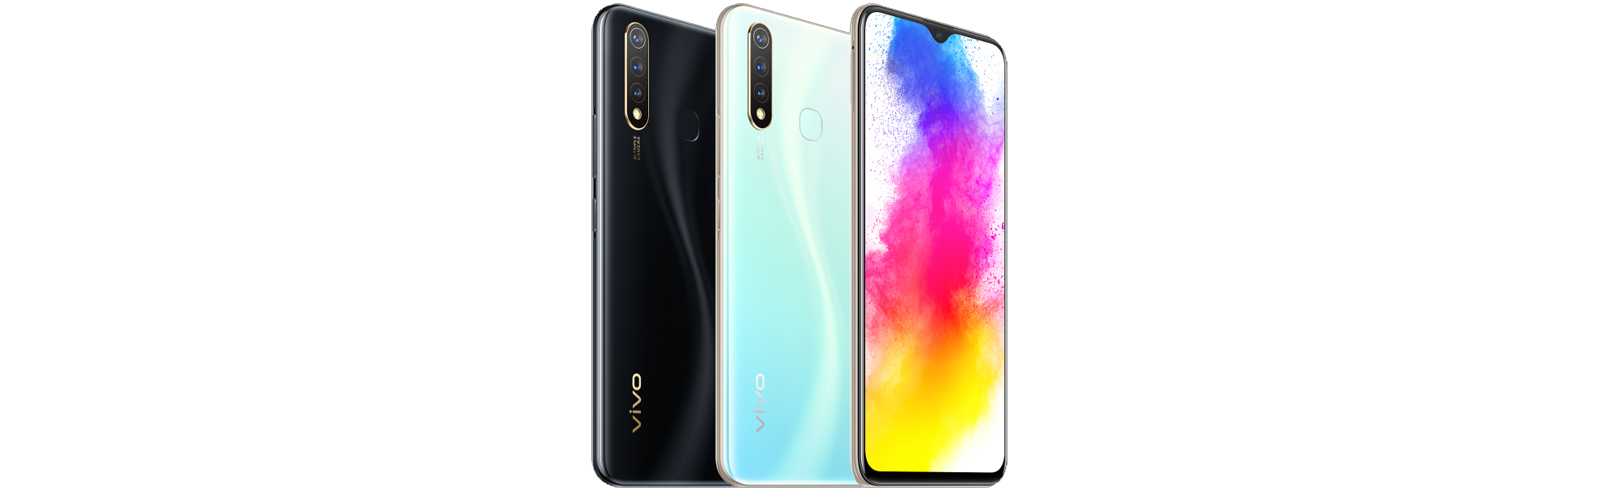 Vivo Z5i goes official with a 5000 mAh battery, Snapdragon 675 chipset